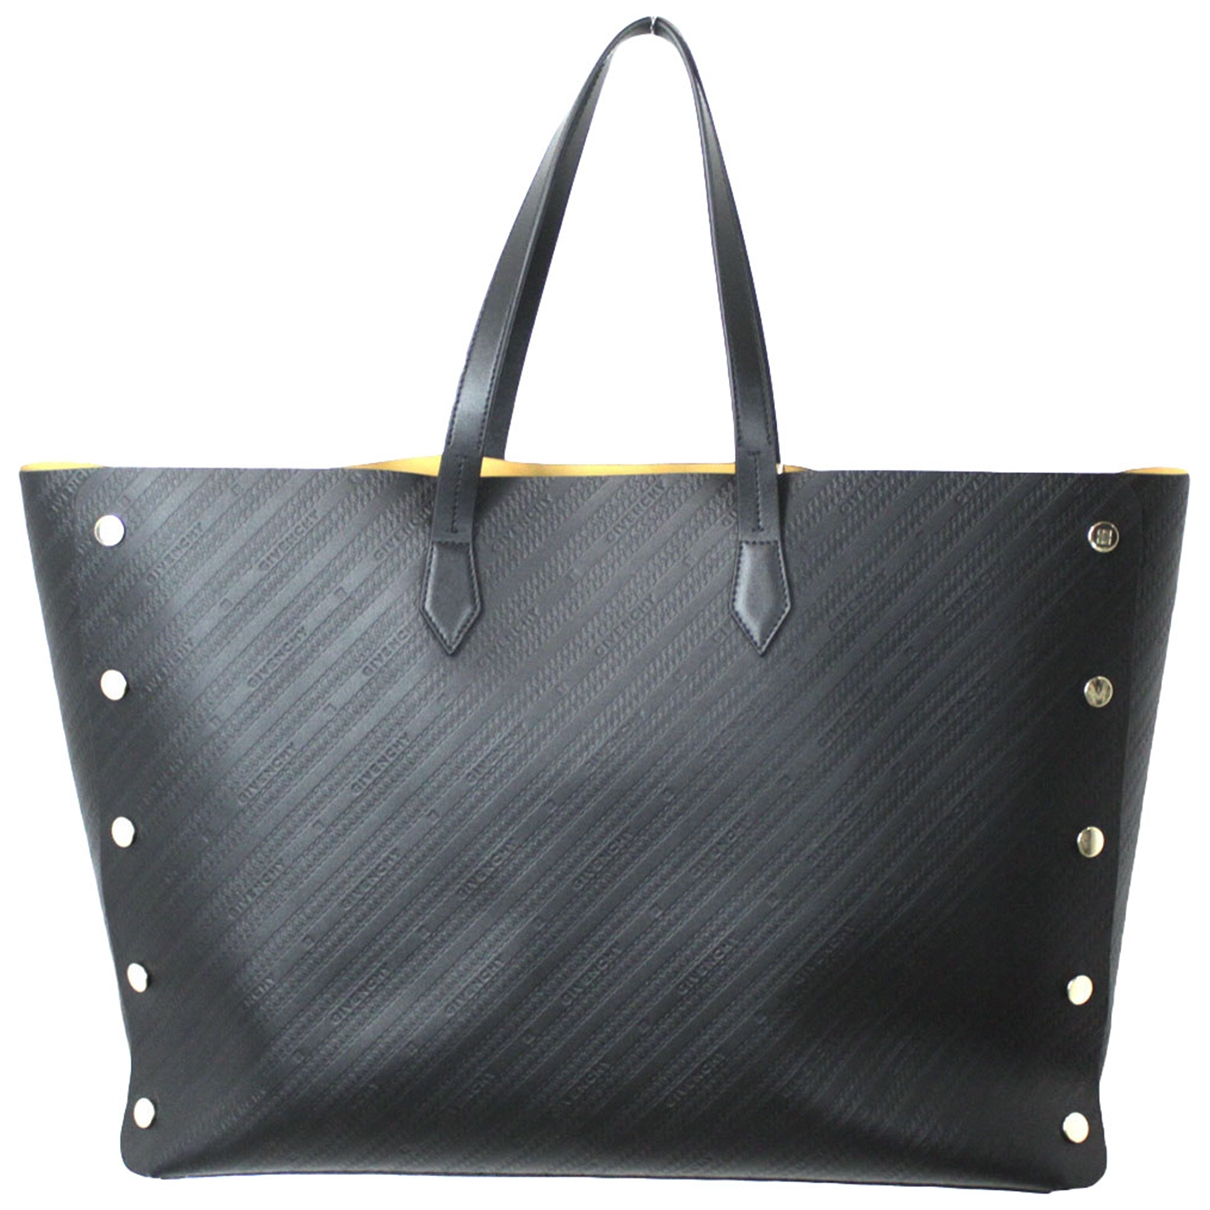 Givenchy \N Black Leather handbag for Women \N